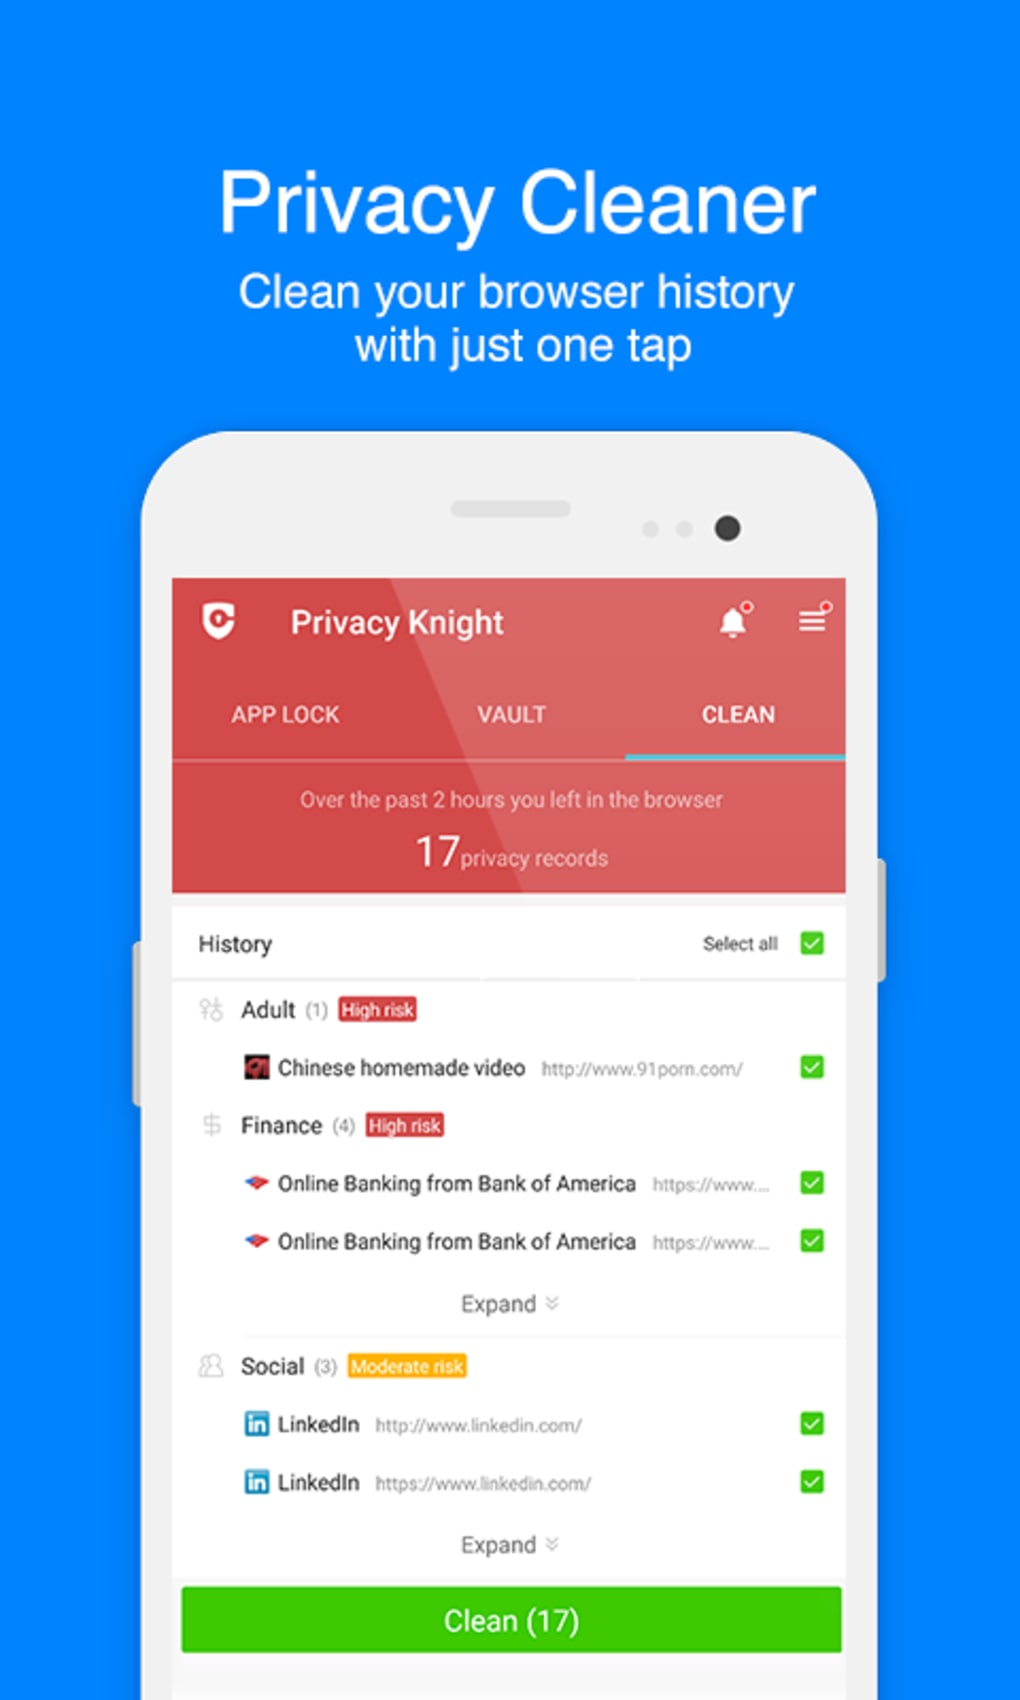 Free App Lock - Privacy Knight for Android - Download